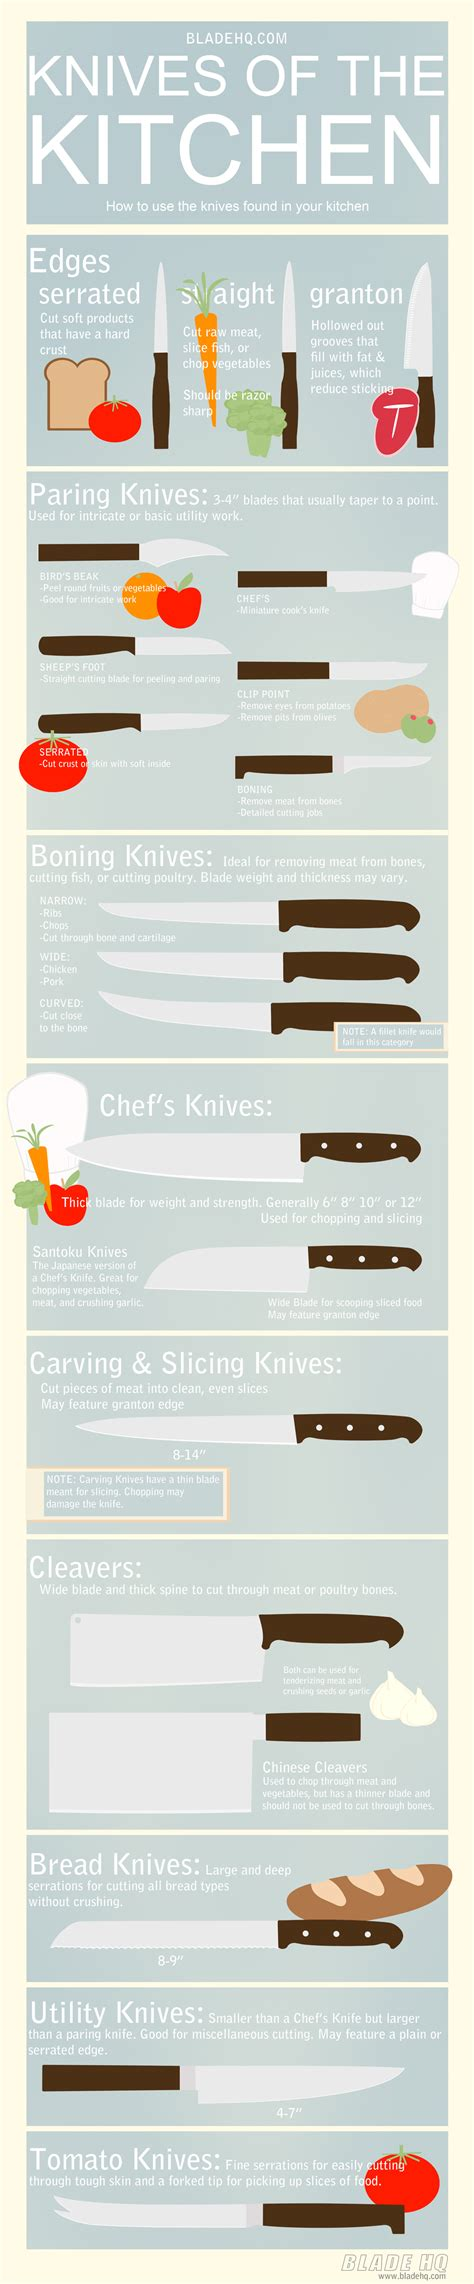 Knives In The Kitchen | kitchen corner archives kitchen knife blog